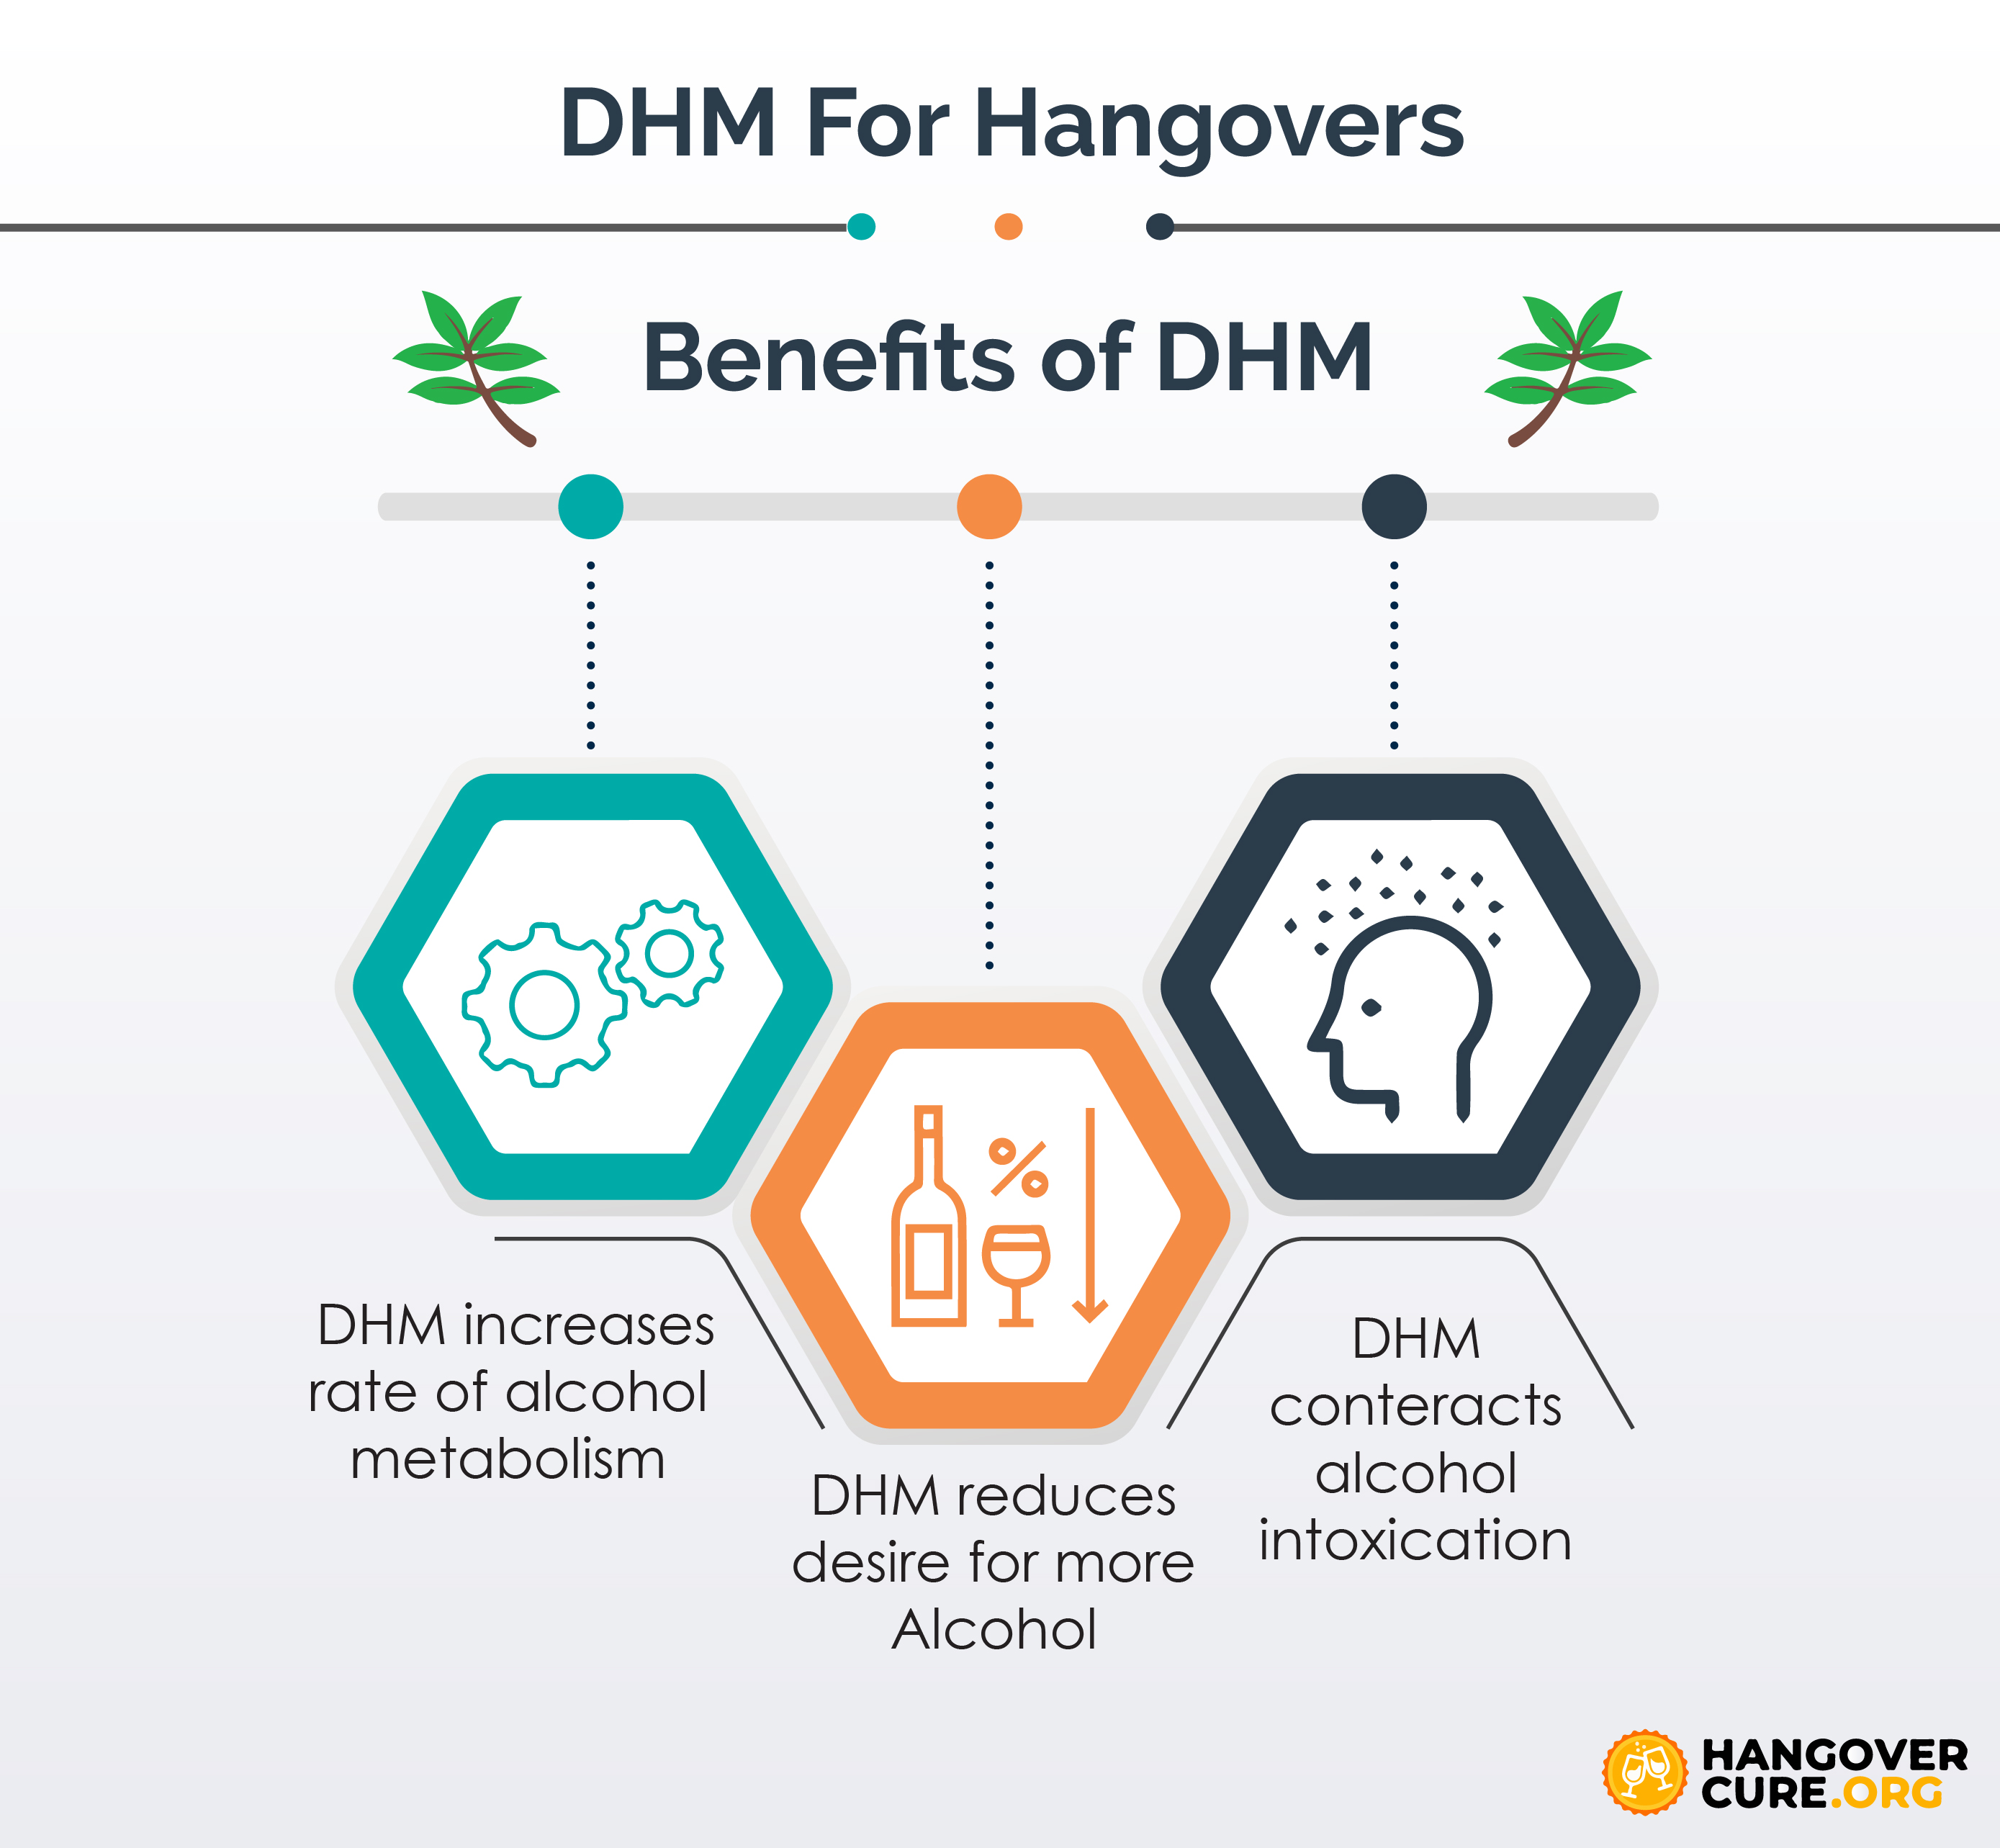 DHM for hangovers infographic